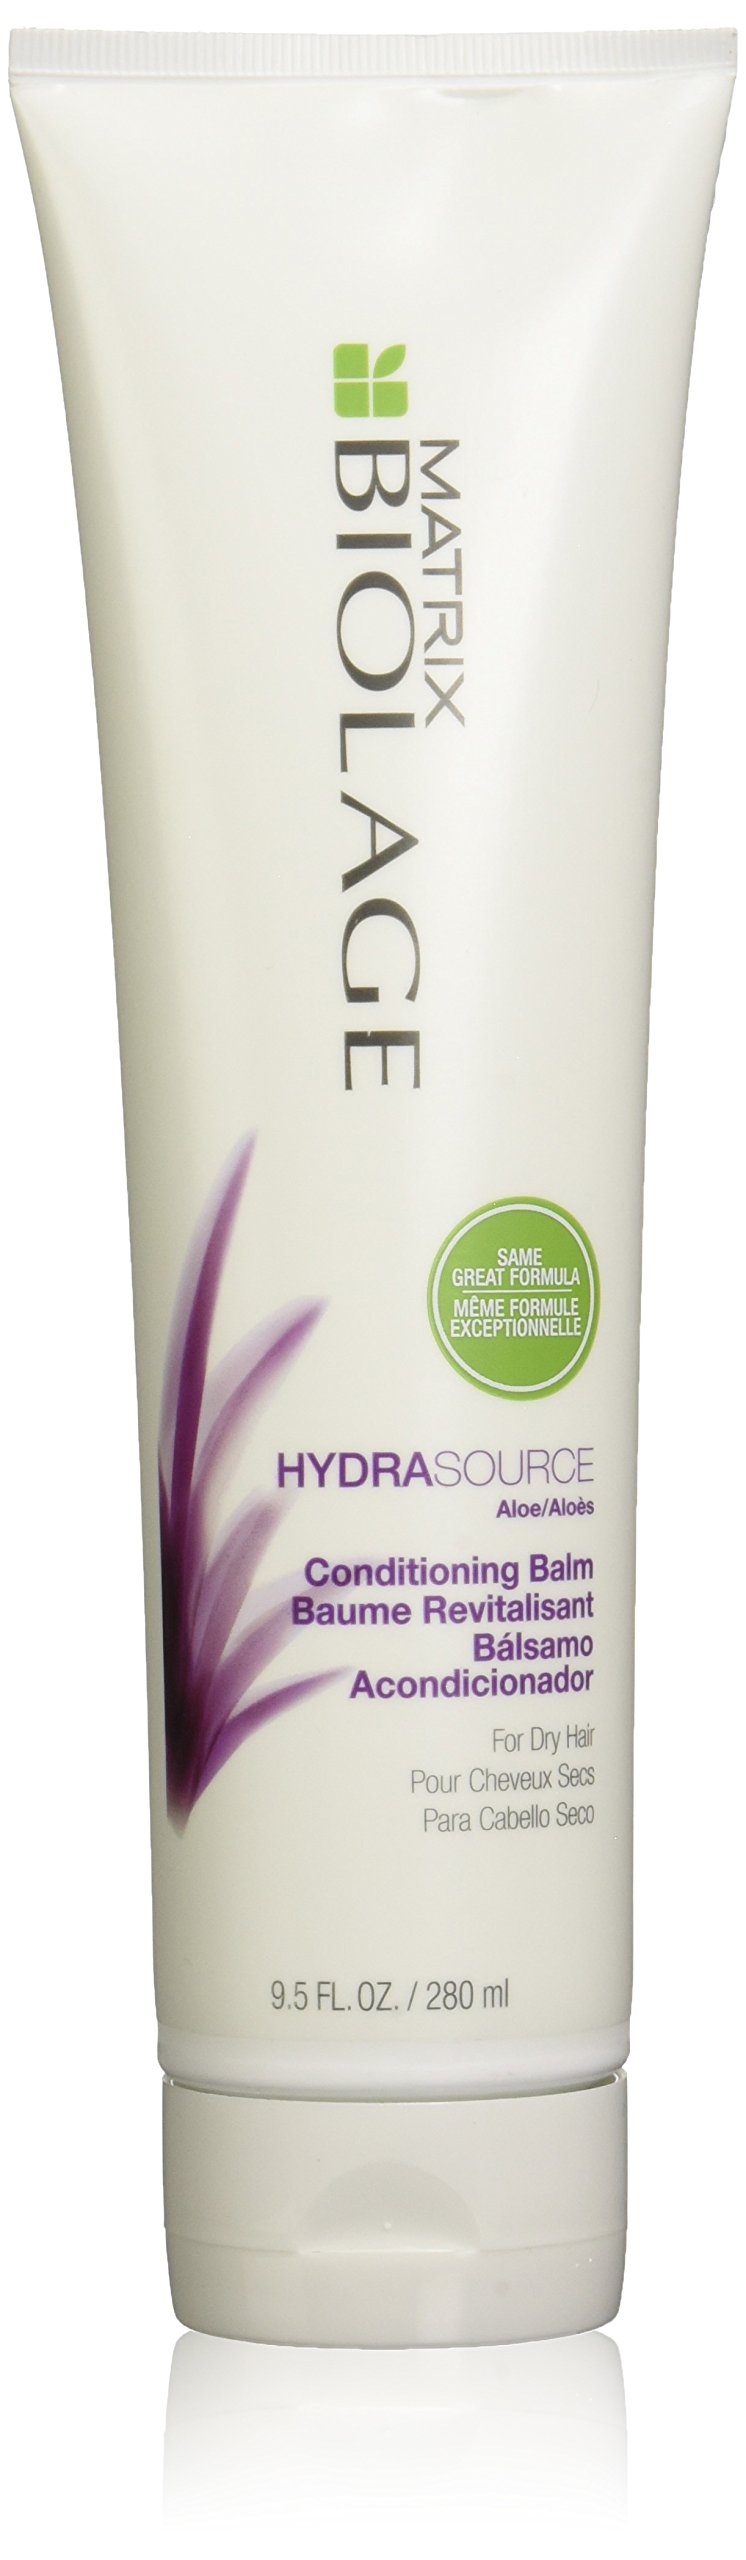 Matrix Biolage HydraSource Conditioning Balm, 9.5 Fluid Ounce